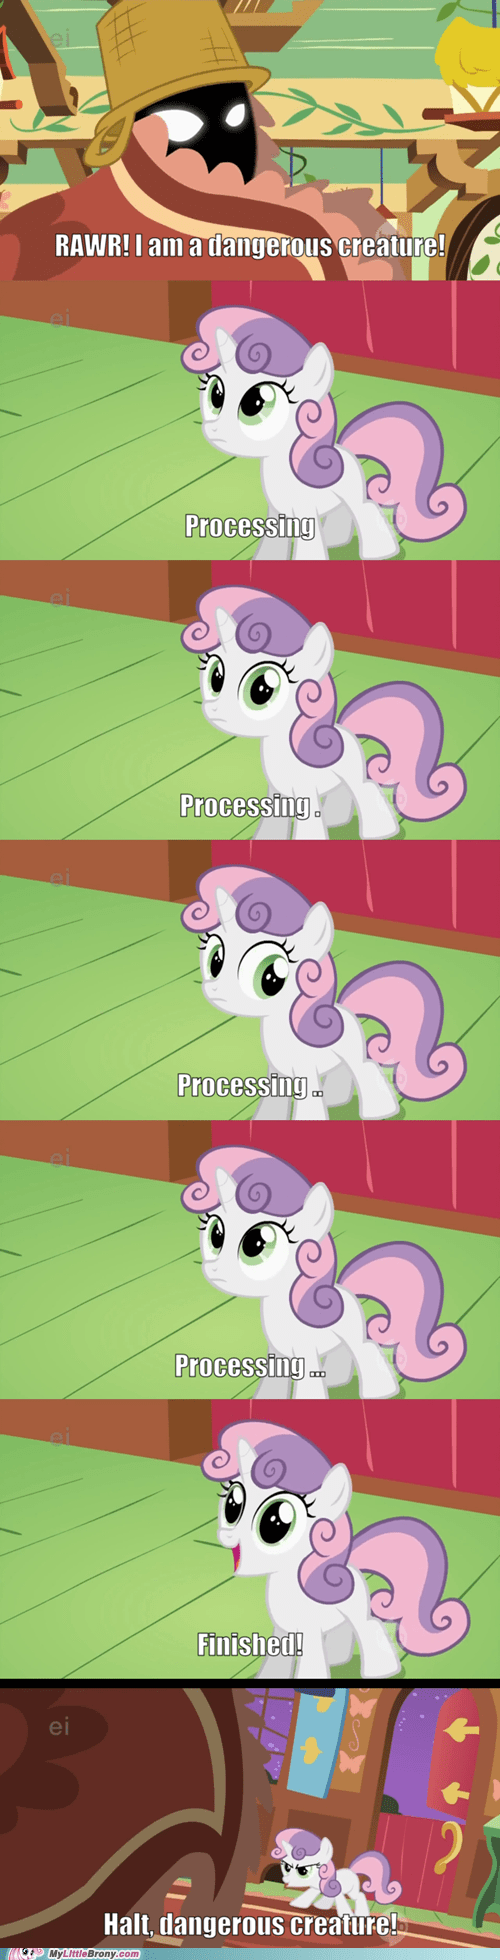 Sweetie Belle,comics,executable,processing